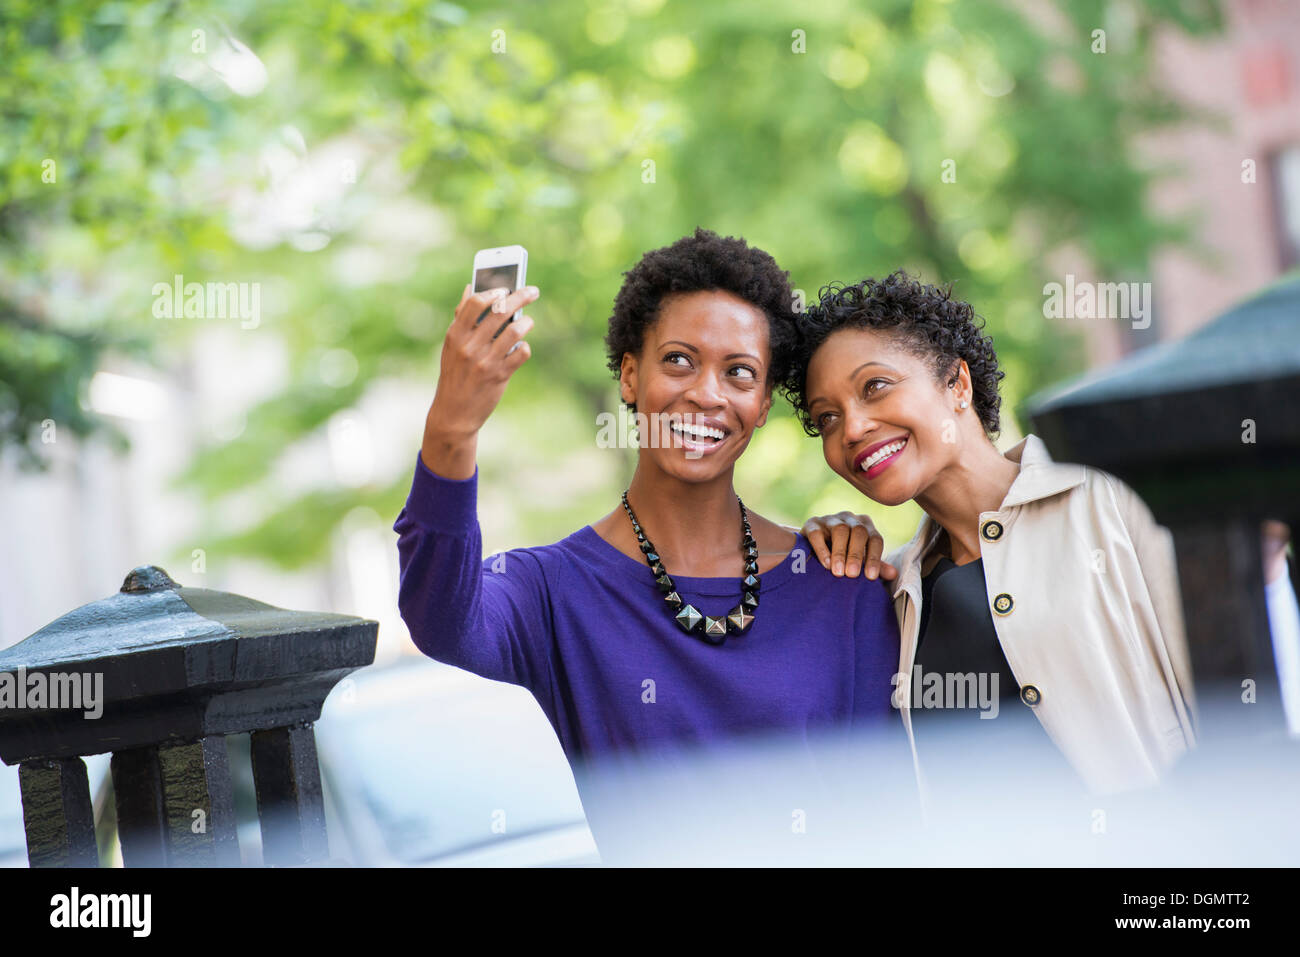 City life. Two women sitting on a park bench, side by side. Posing for a photograph with a smart phone. - Stock Image